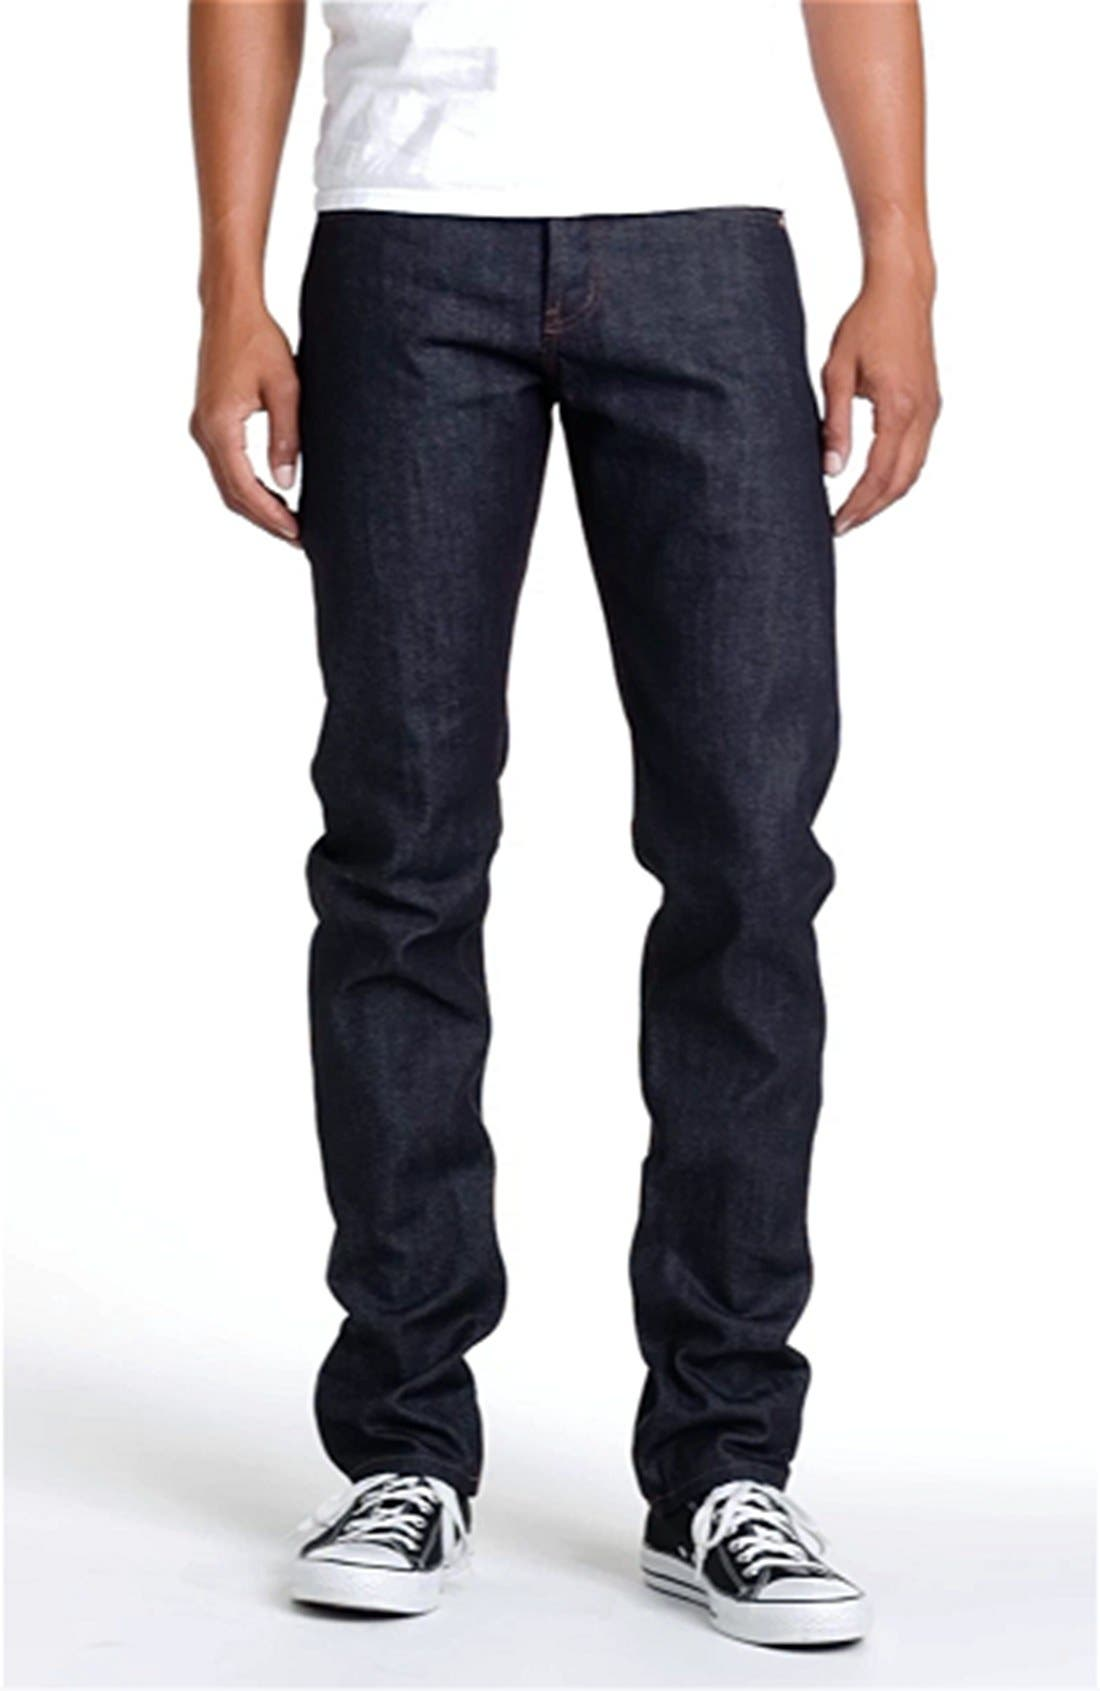 UB201 Tapered Fit Raw Selvedge Jeans,                             Alternate thumbnail 8, color,                             INDIGO